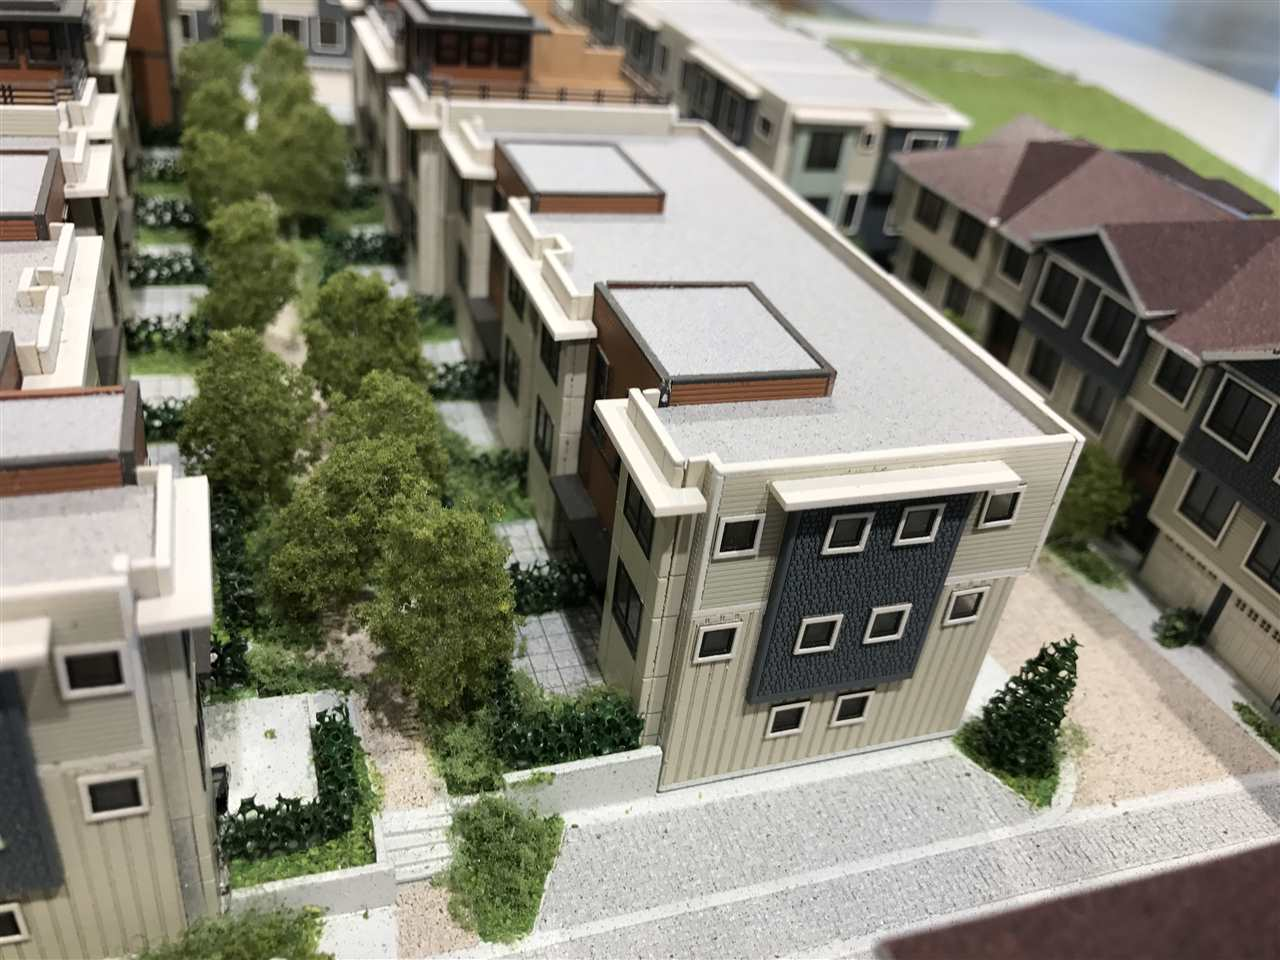 Parc Riviera Mews Townhouses will be finished in 2019/2020. This is a 3 bedroom Townhouse with side by side Parking. It also features Geothermal cooling and heating.  This is an end unit which more features windows and privacy.